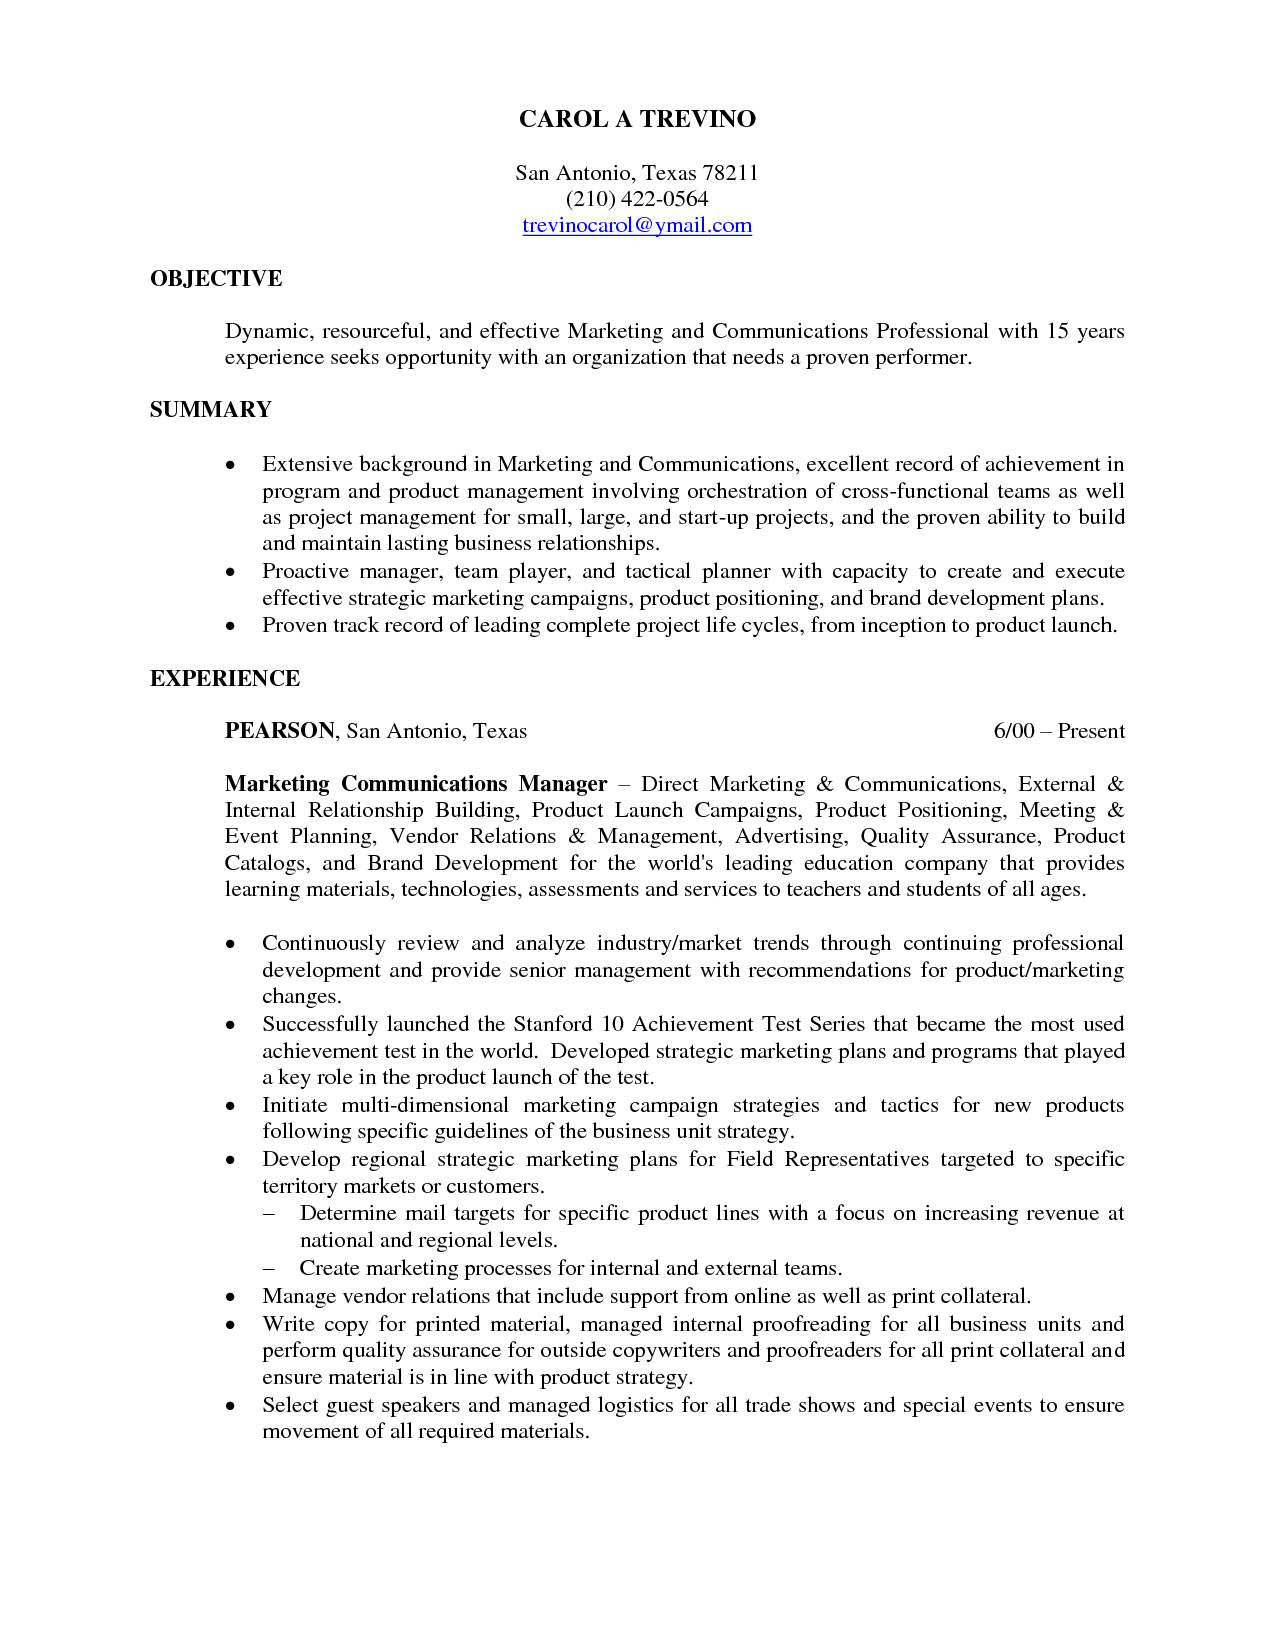 Objective Internship Resume  Objective For Student Resume